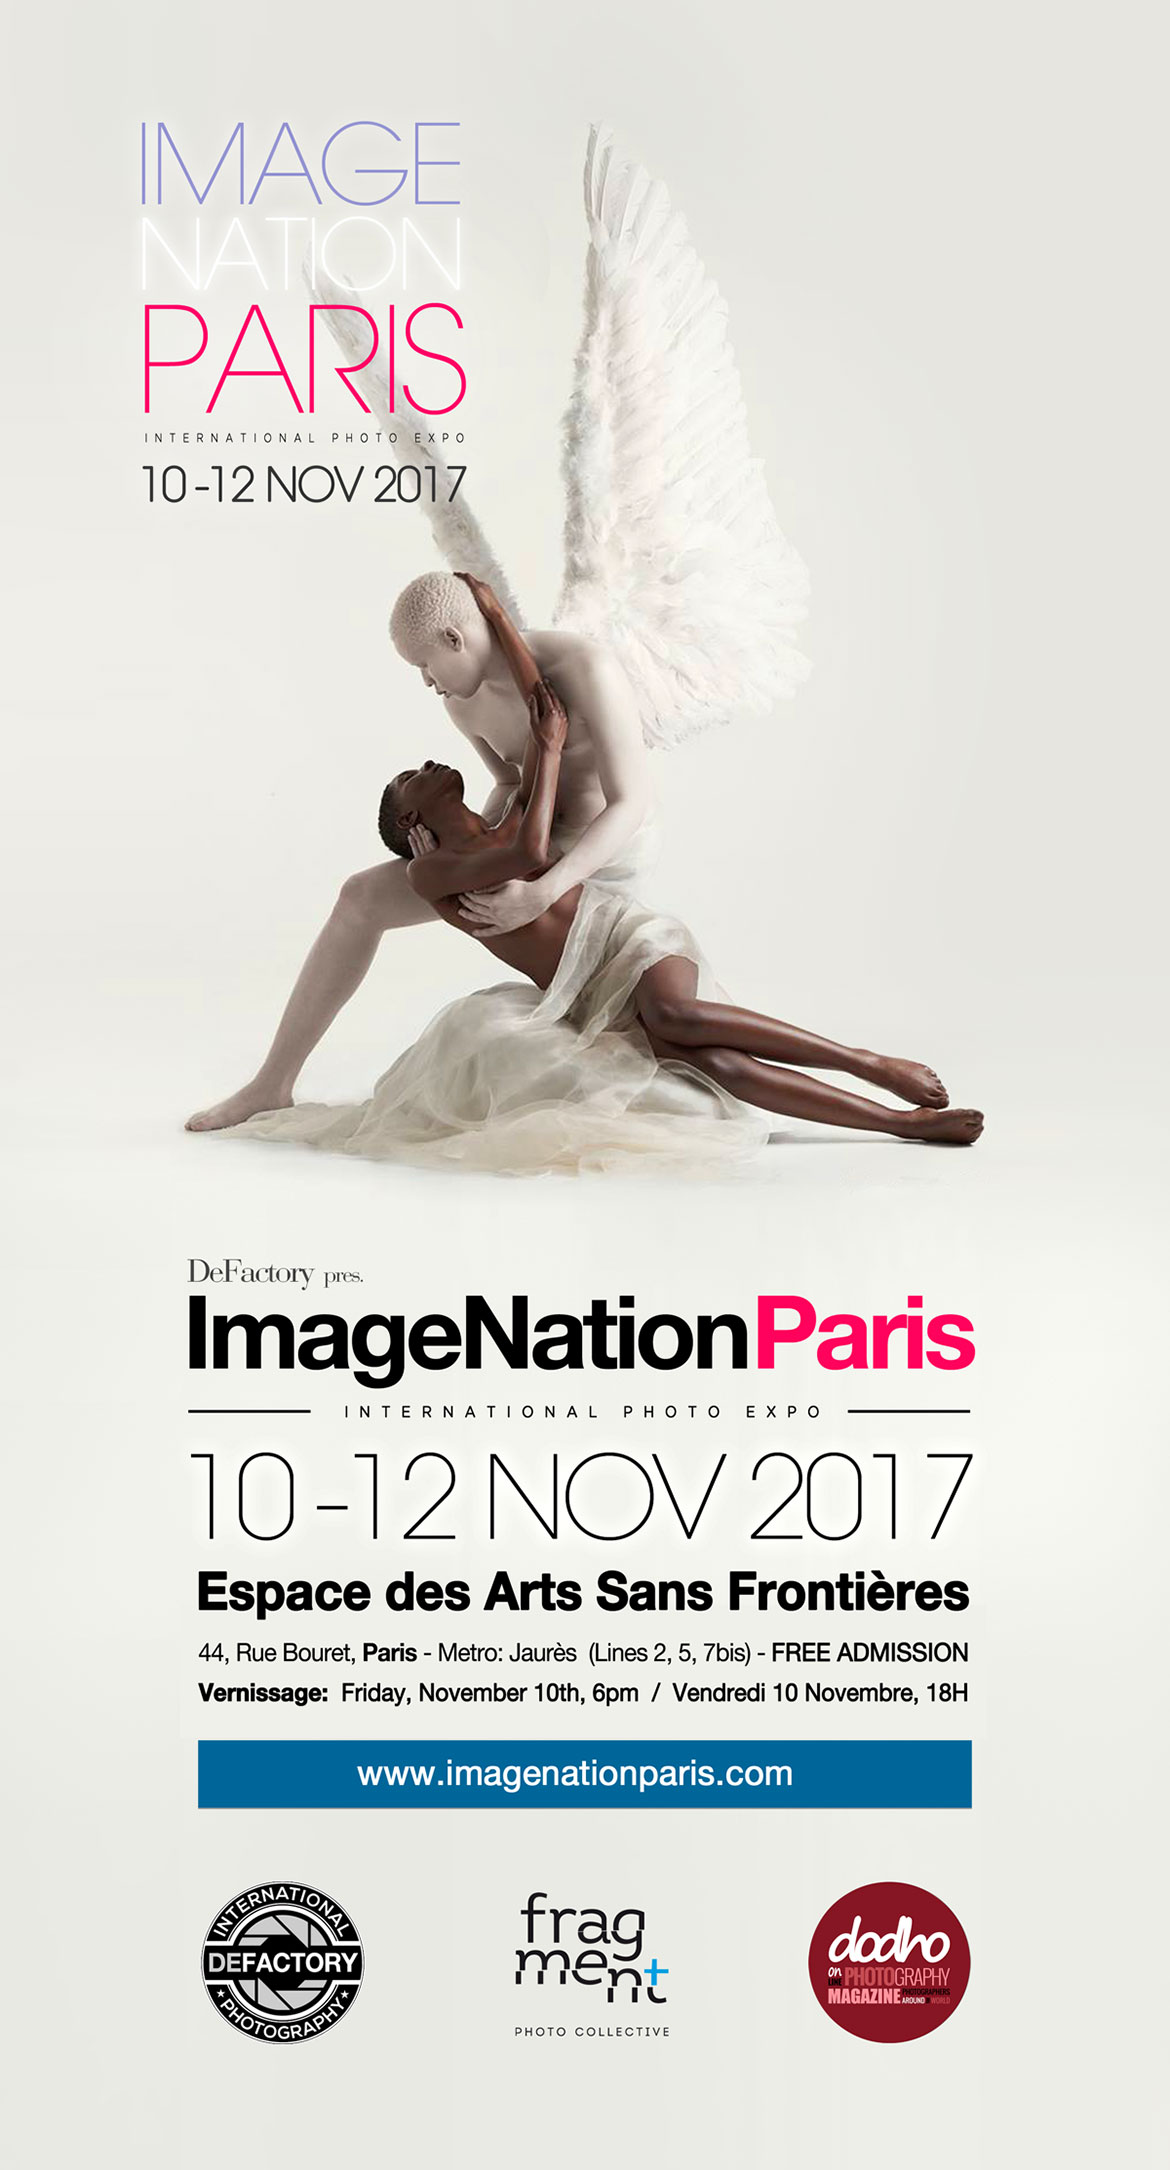 ImageNation Paris